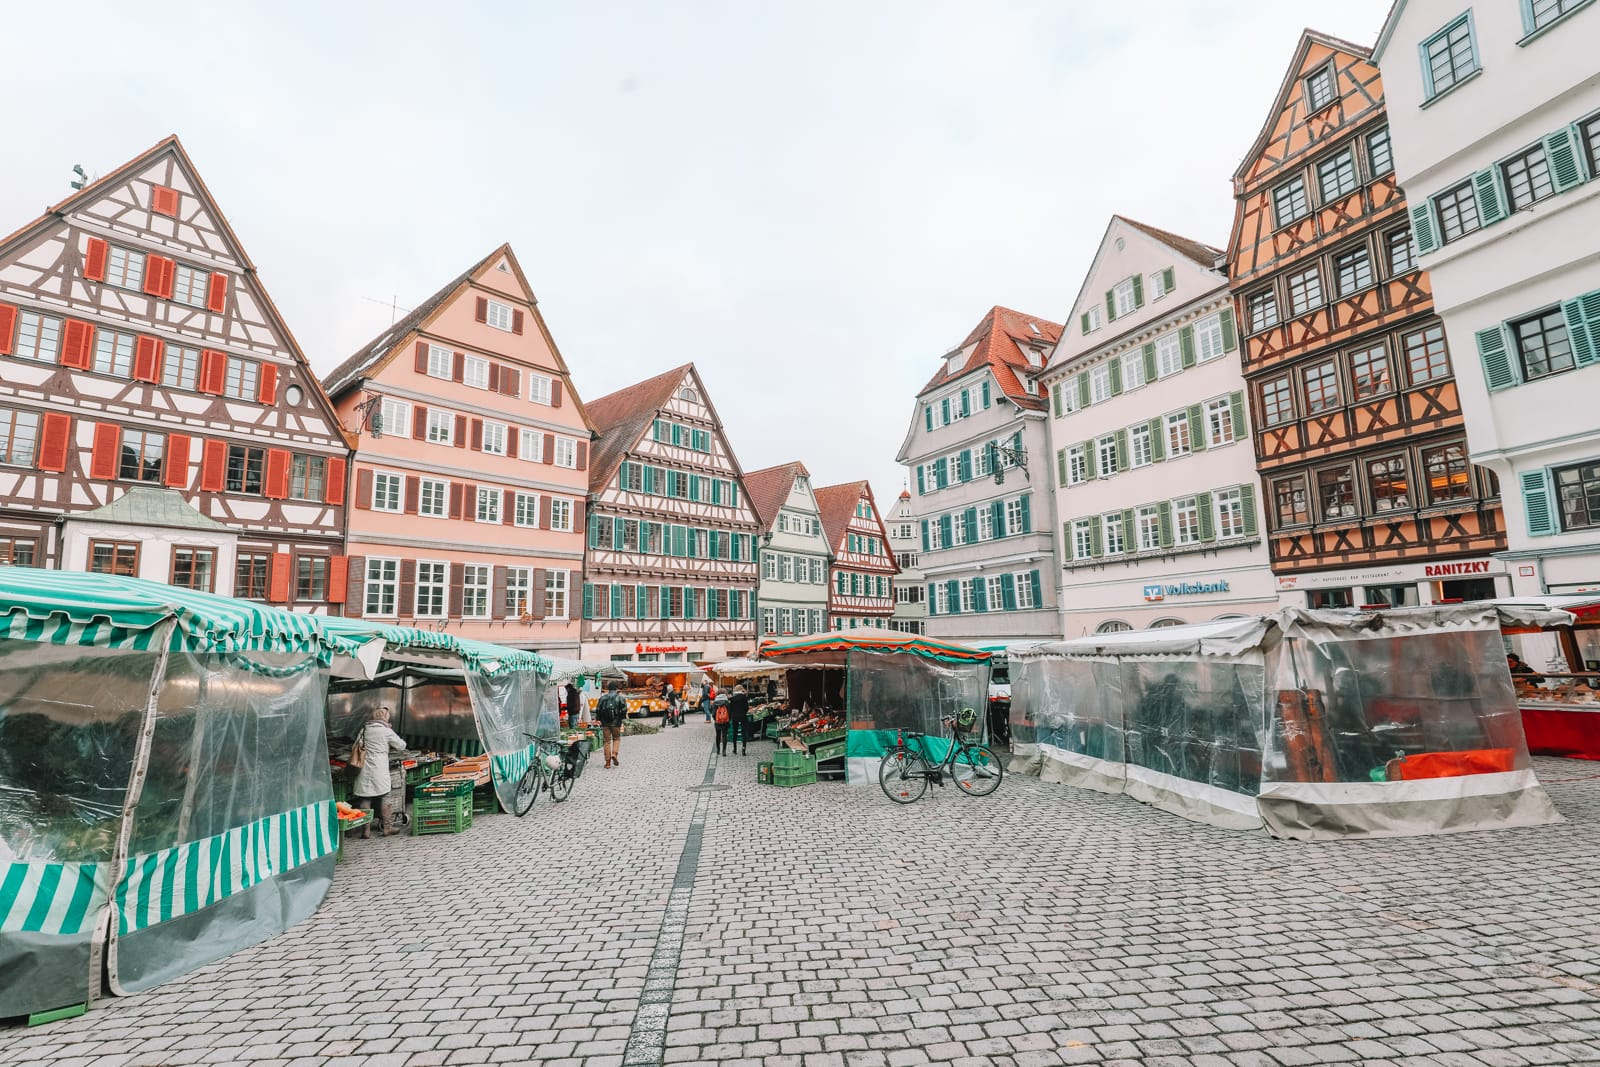 The Colourful Ancient City Of Tubingen, Germany (23)